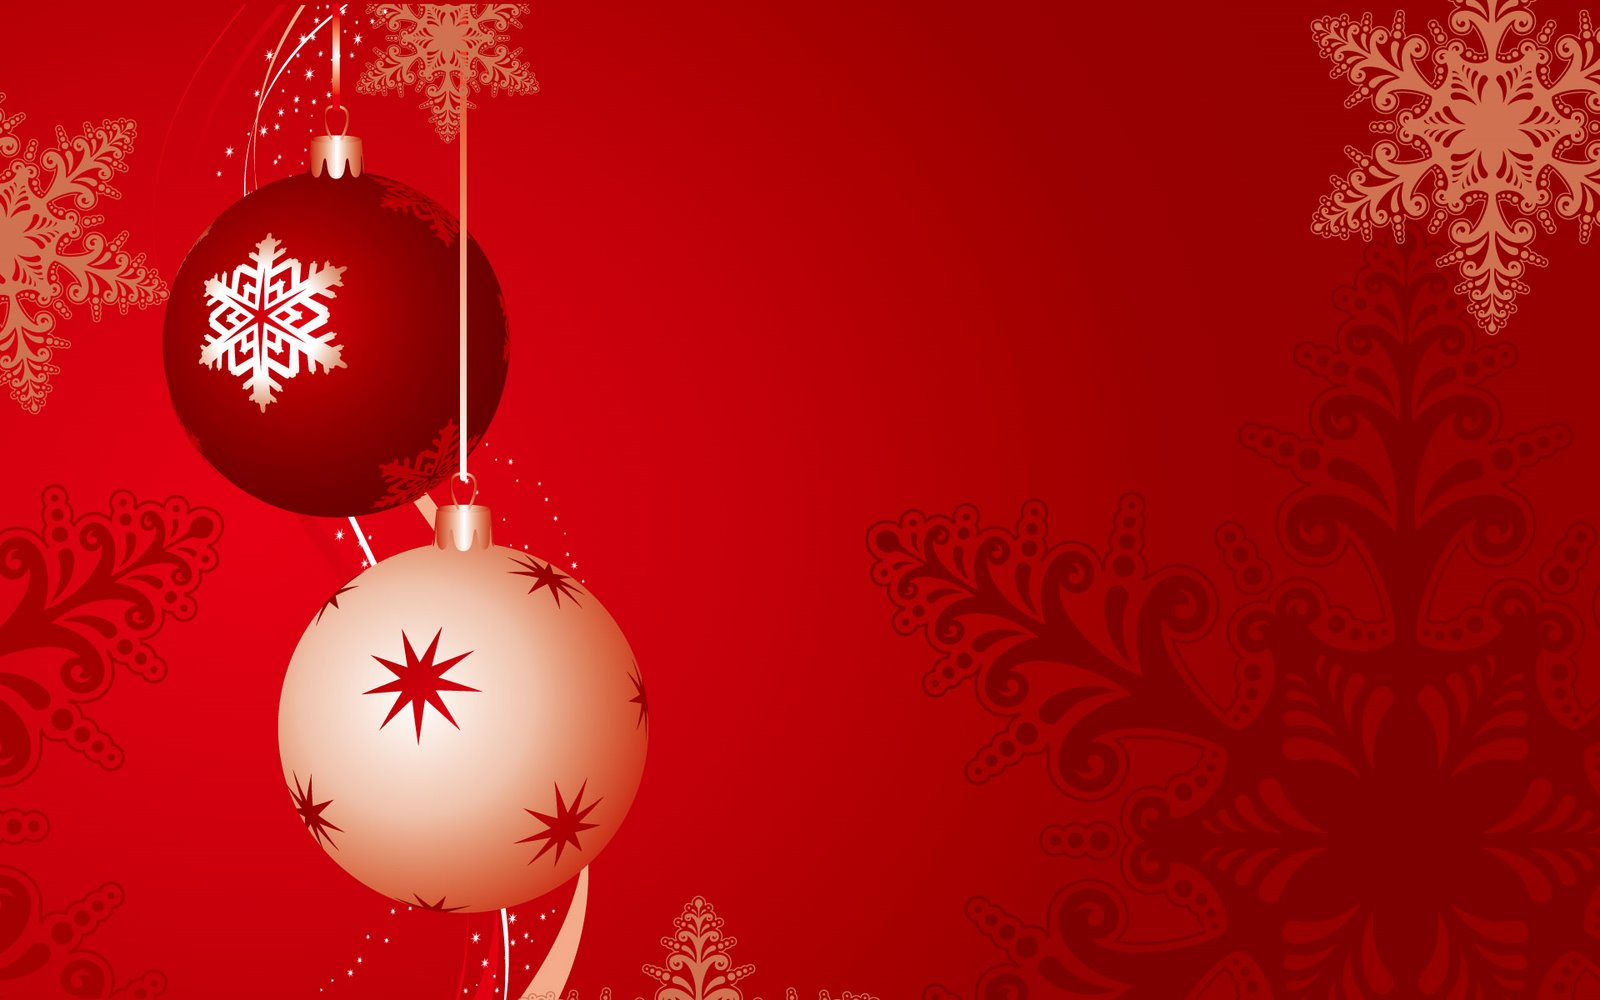 Wallpapers Background: christmas wallpapers backgrounds | christmas ...